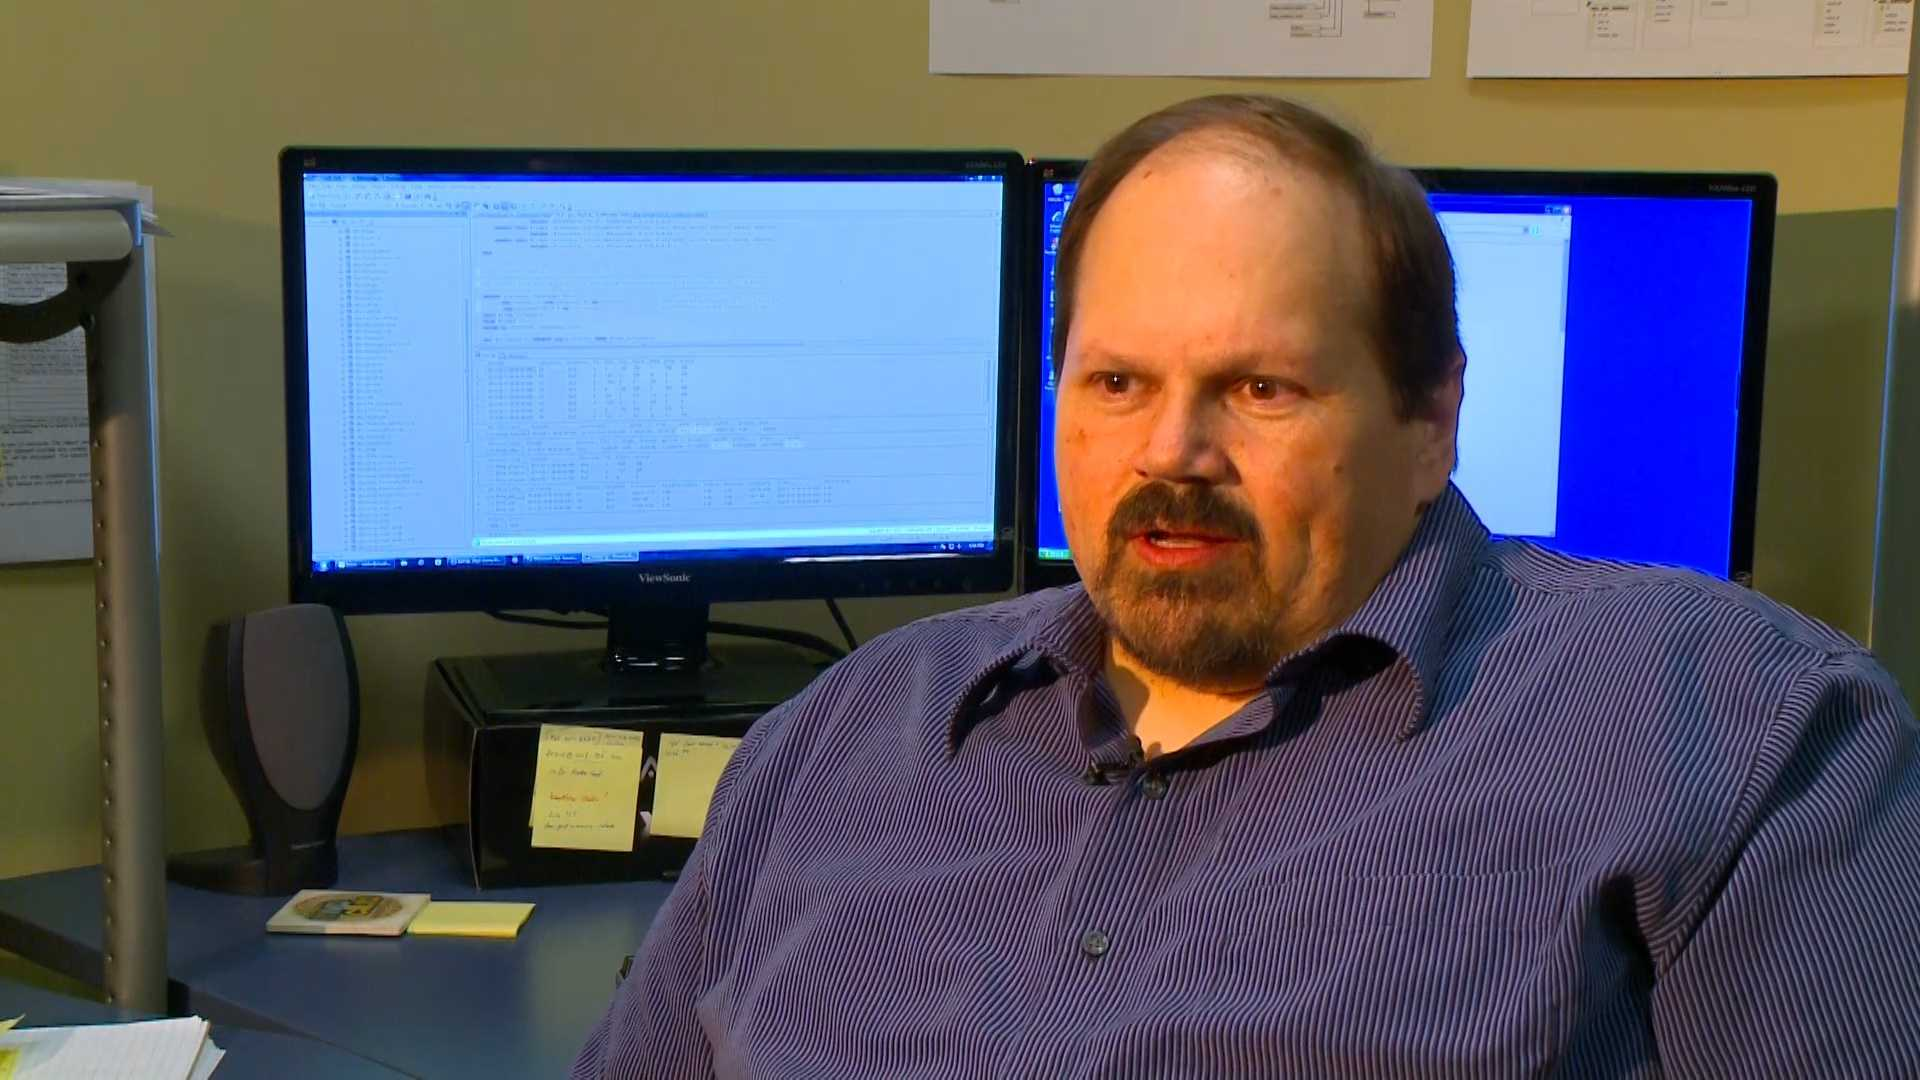 KCCI interviewed Eddie Tipton in February 2014 for a story on how to make your passwords secure in light of all the credit hacking.